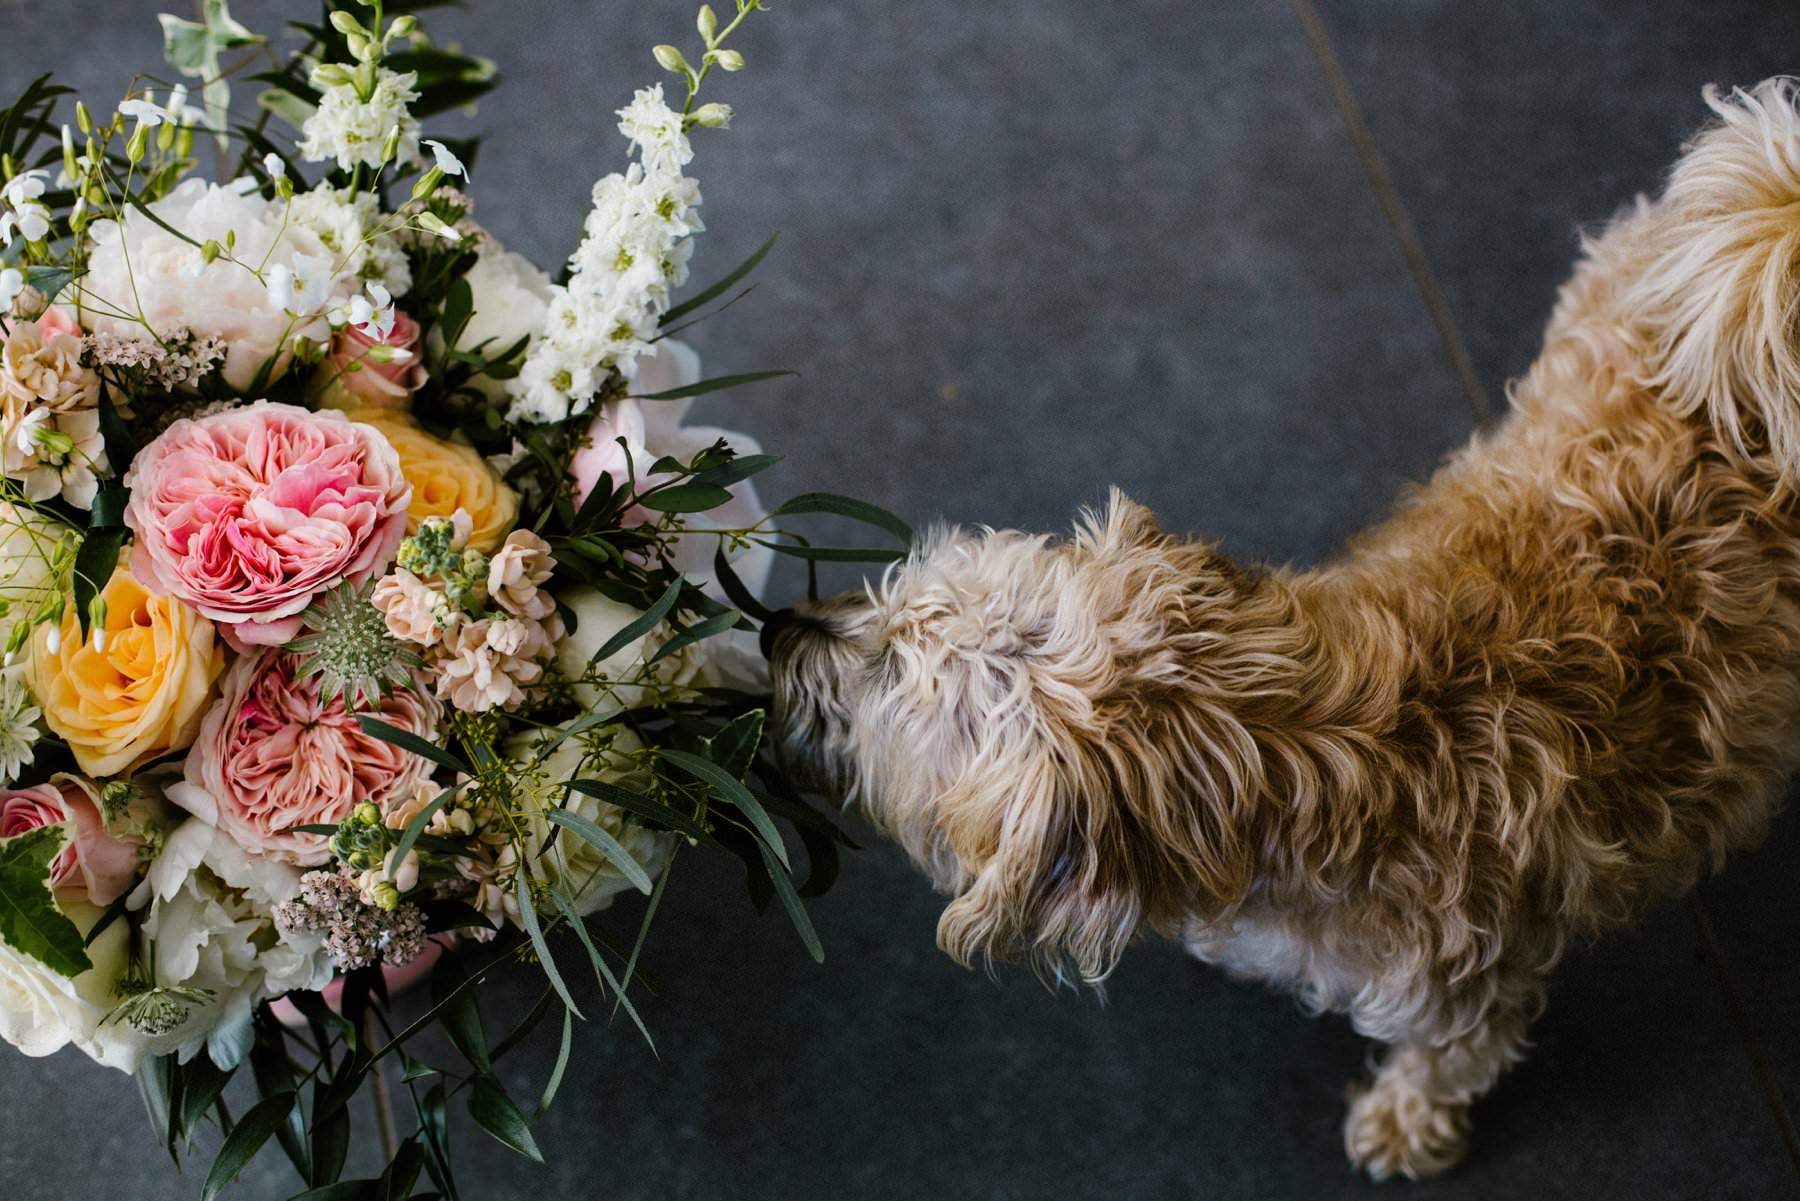 dog smelling bride's bouquet, wedding photographer northern ireland